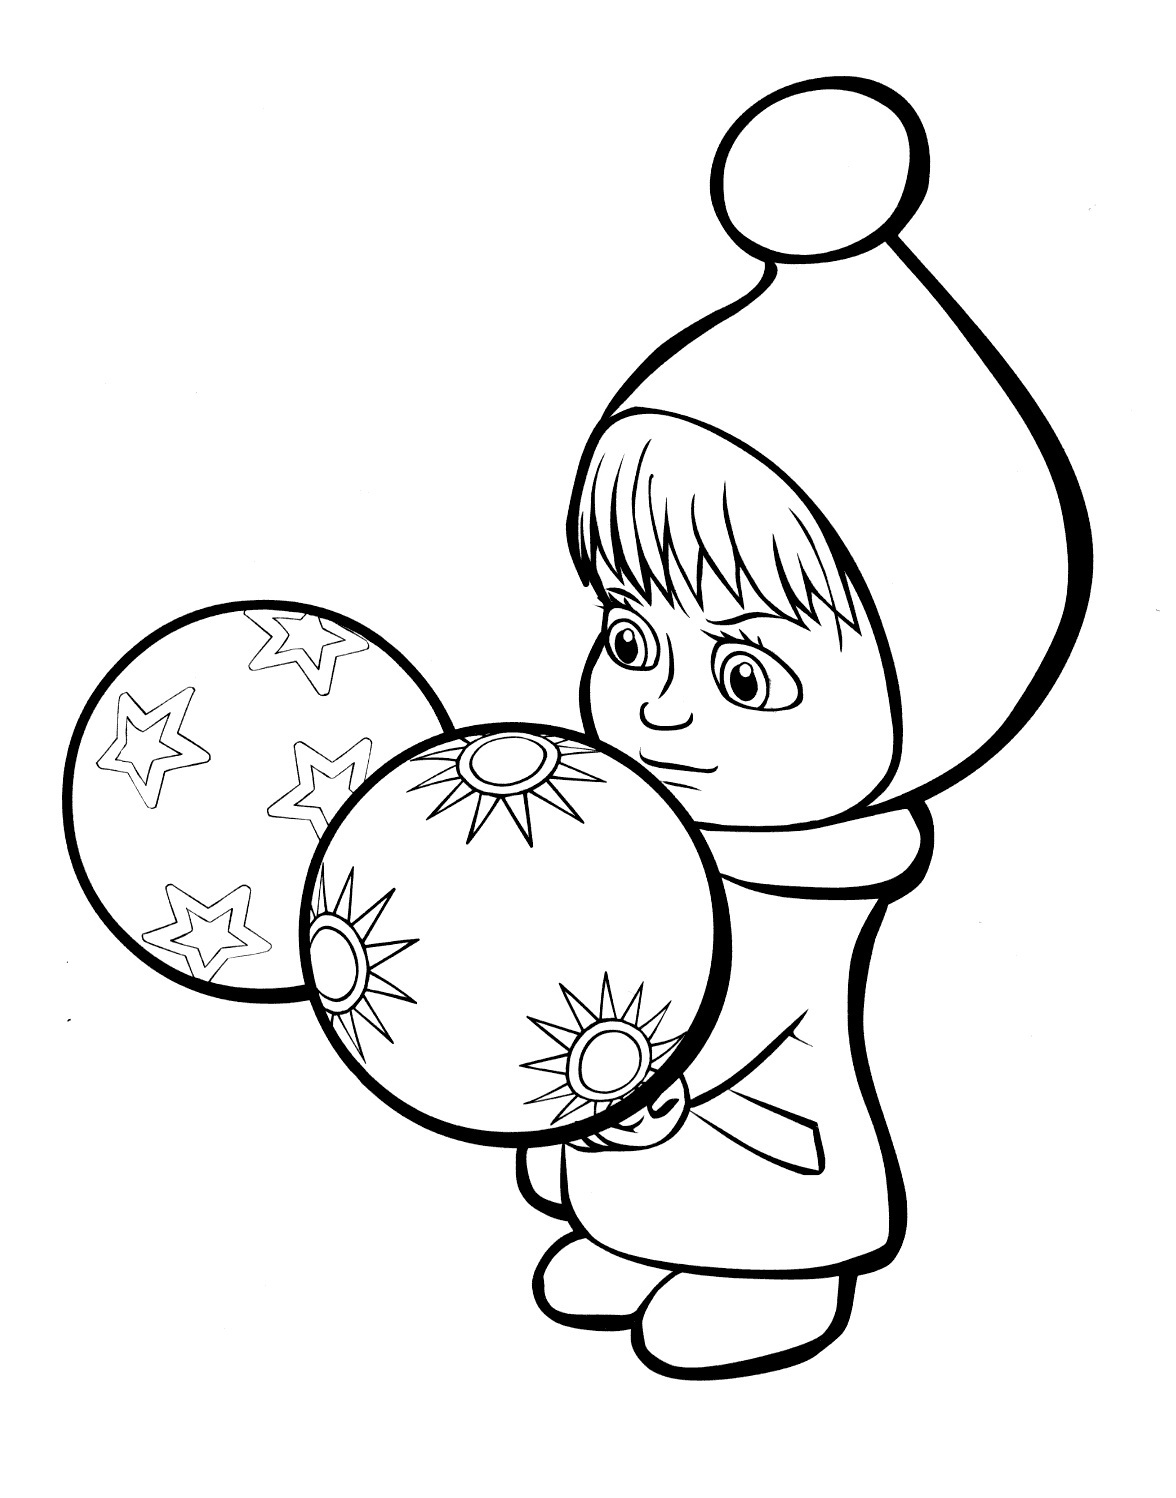 masha i medved coloring pages - photo#11